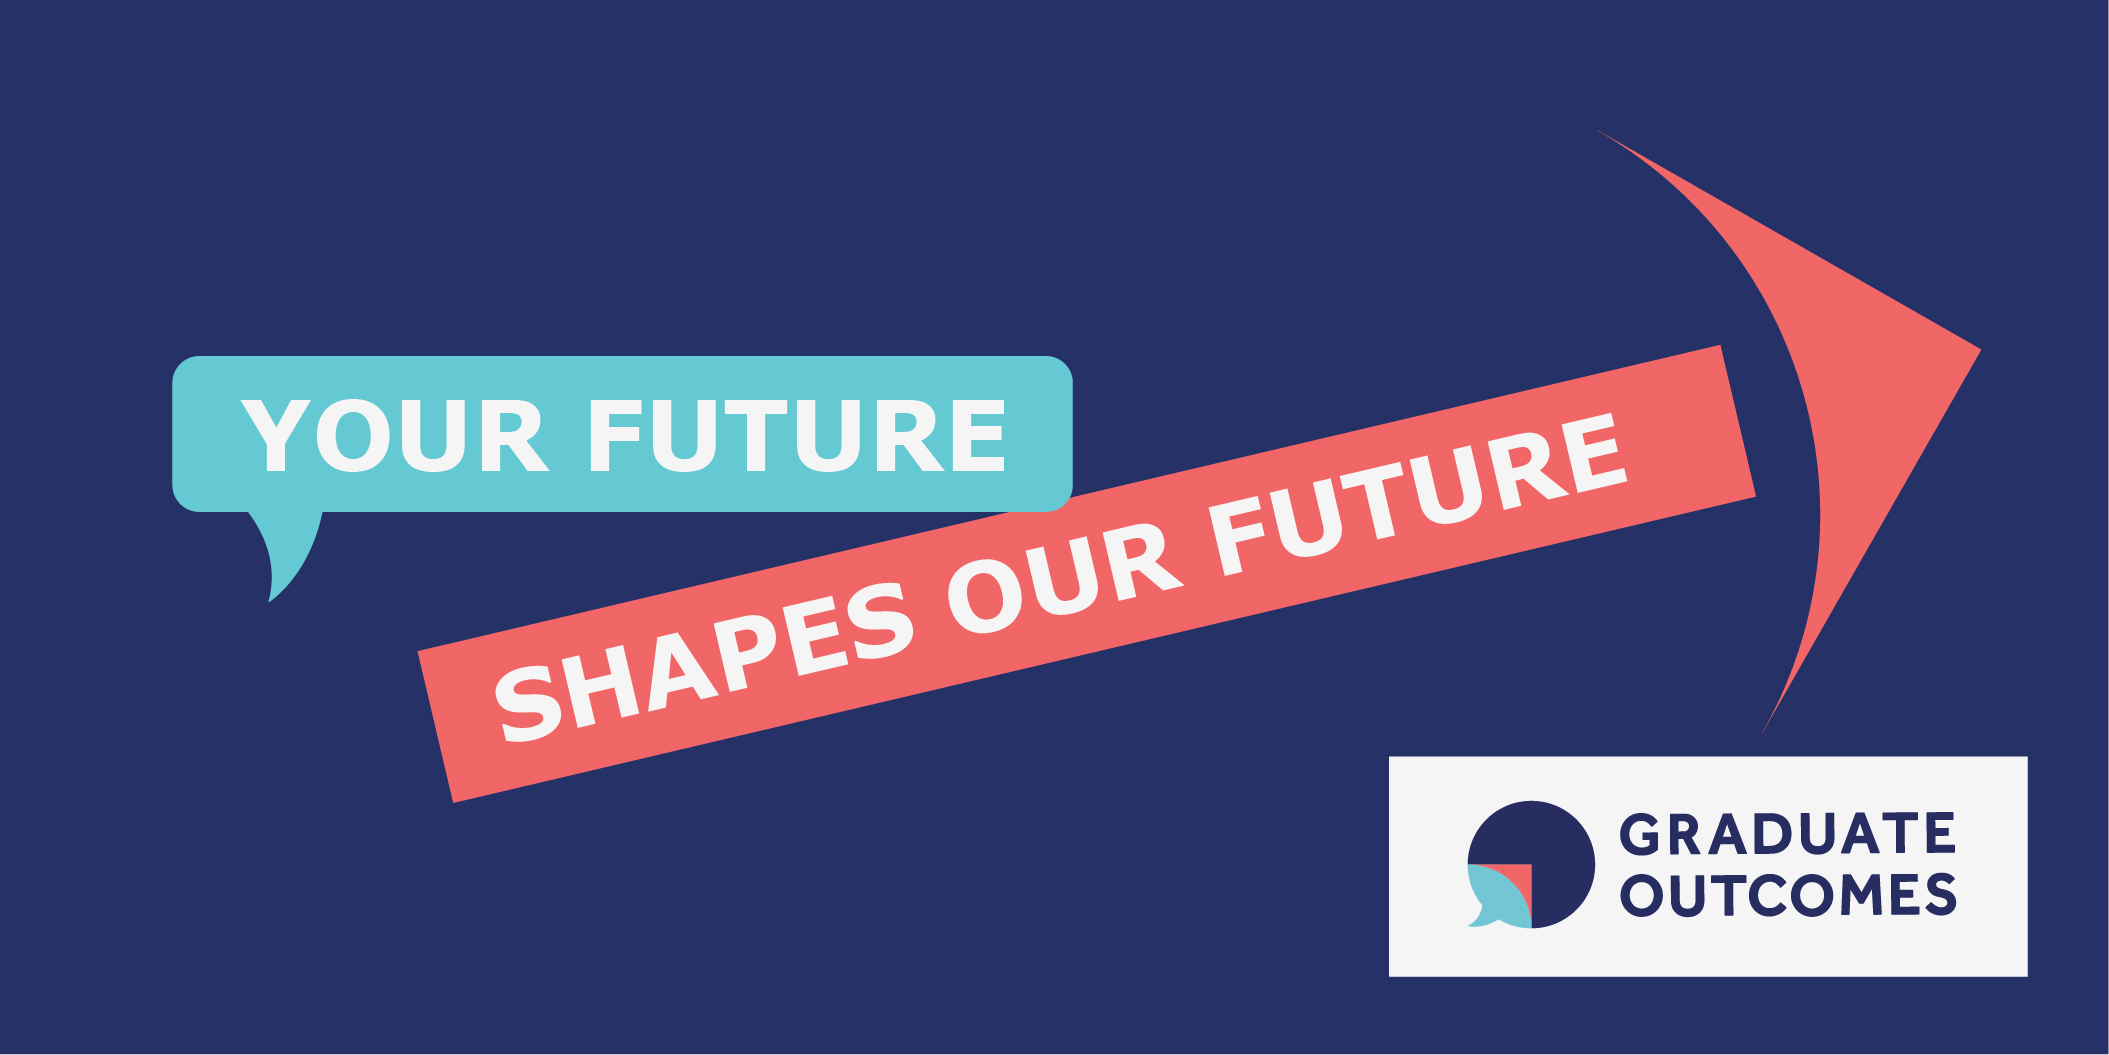 A promotional image for Graduate Outcomes with the caption 'your future shapes our future'.